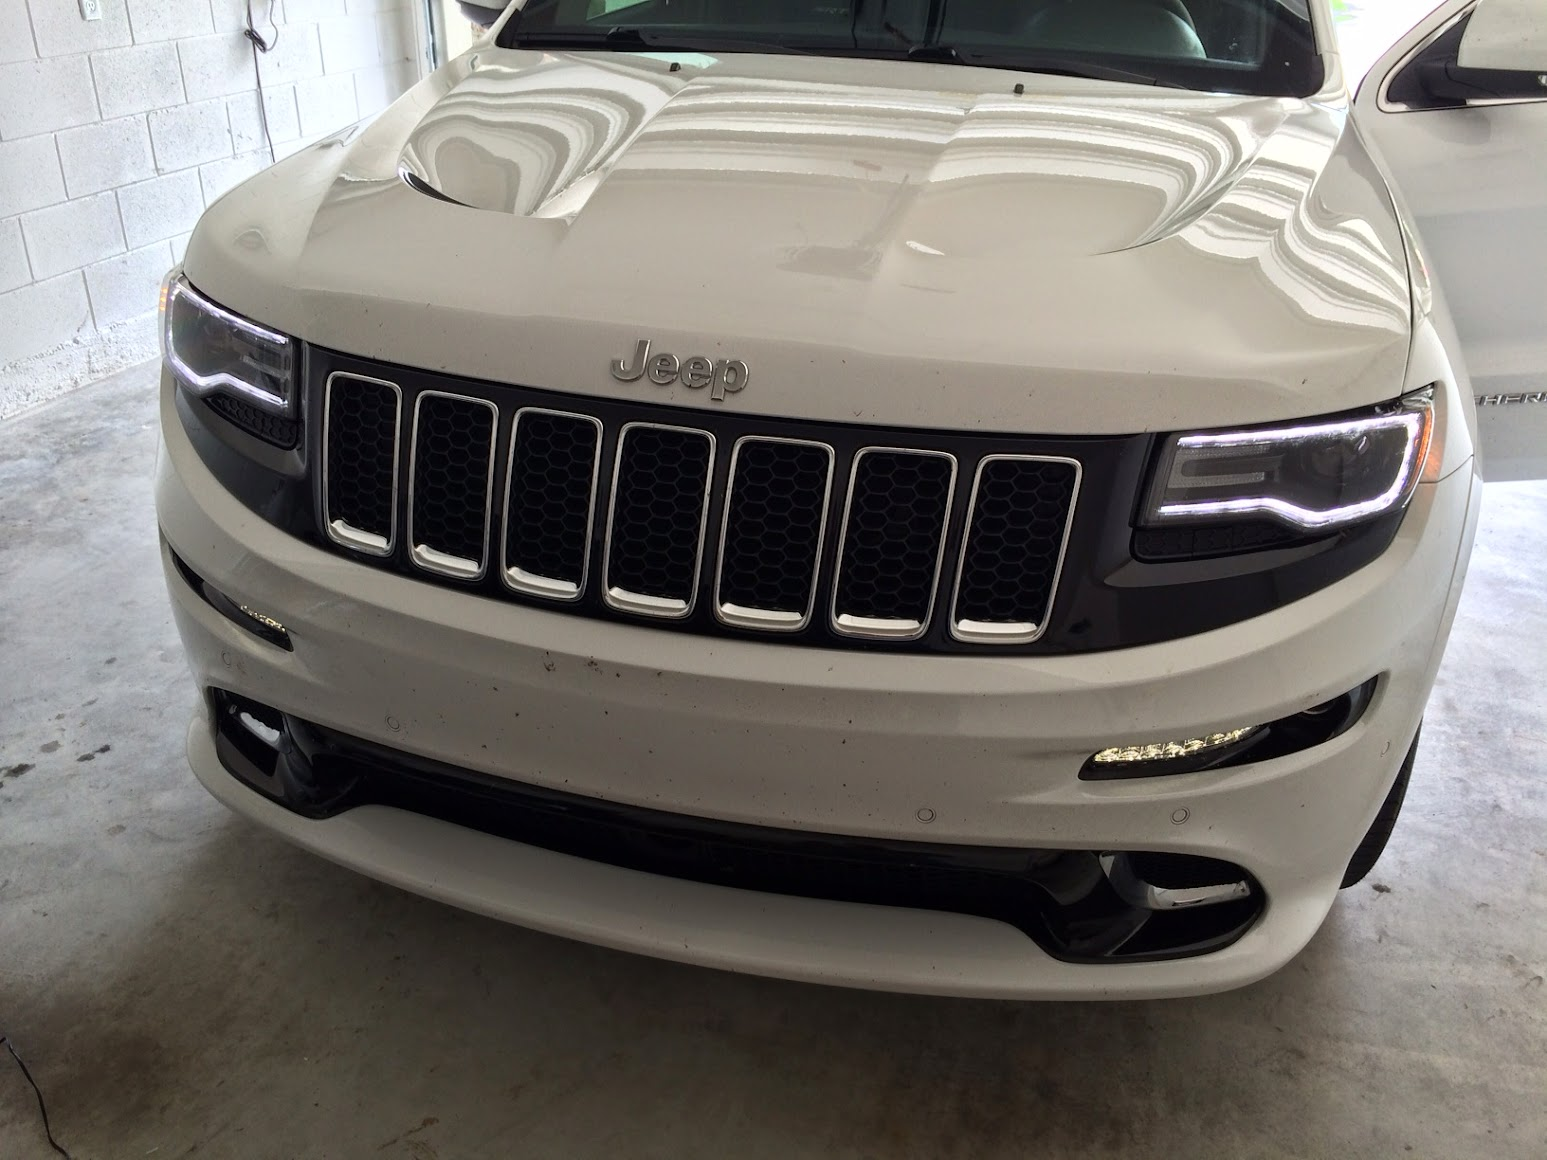 photo+7 how to 2014 headlight drl cherokee srt8 forum 2011 Grand Cherokee Wiring Diagram at edmiracle.co